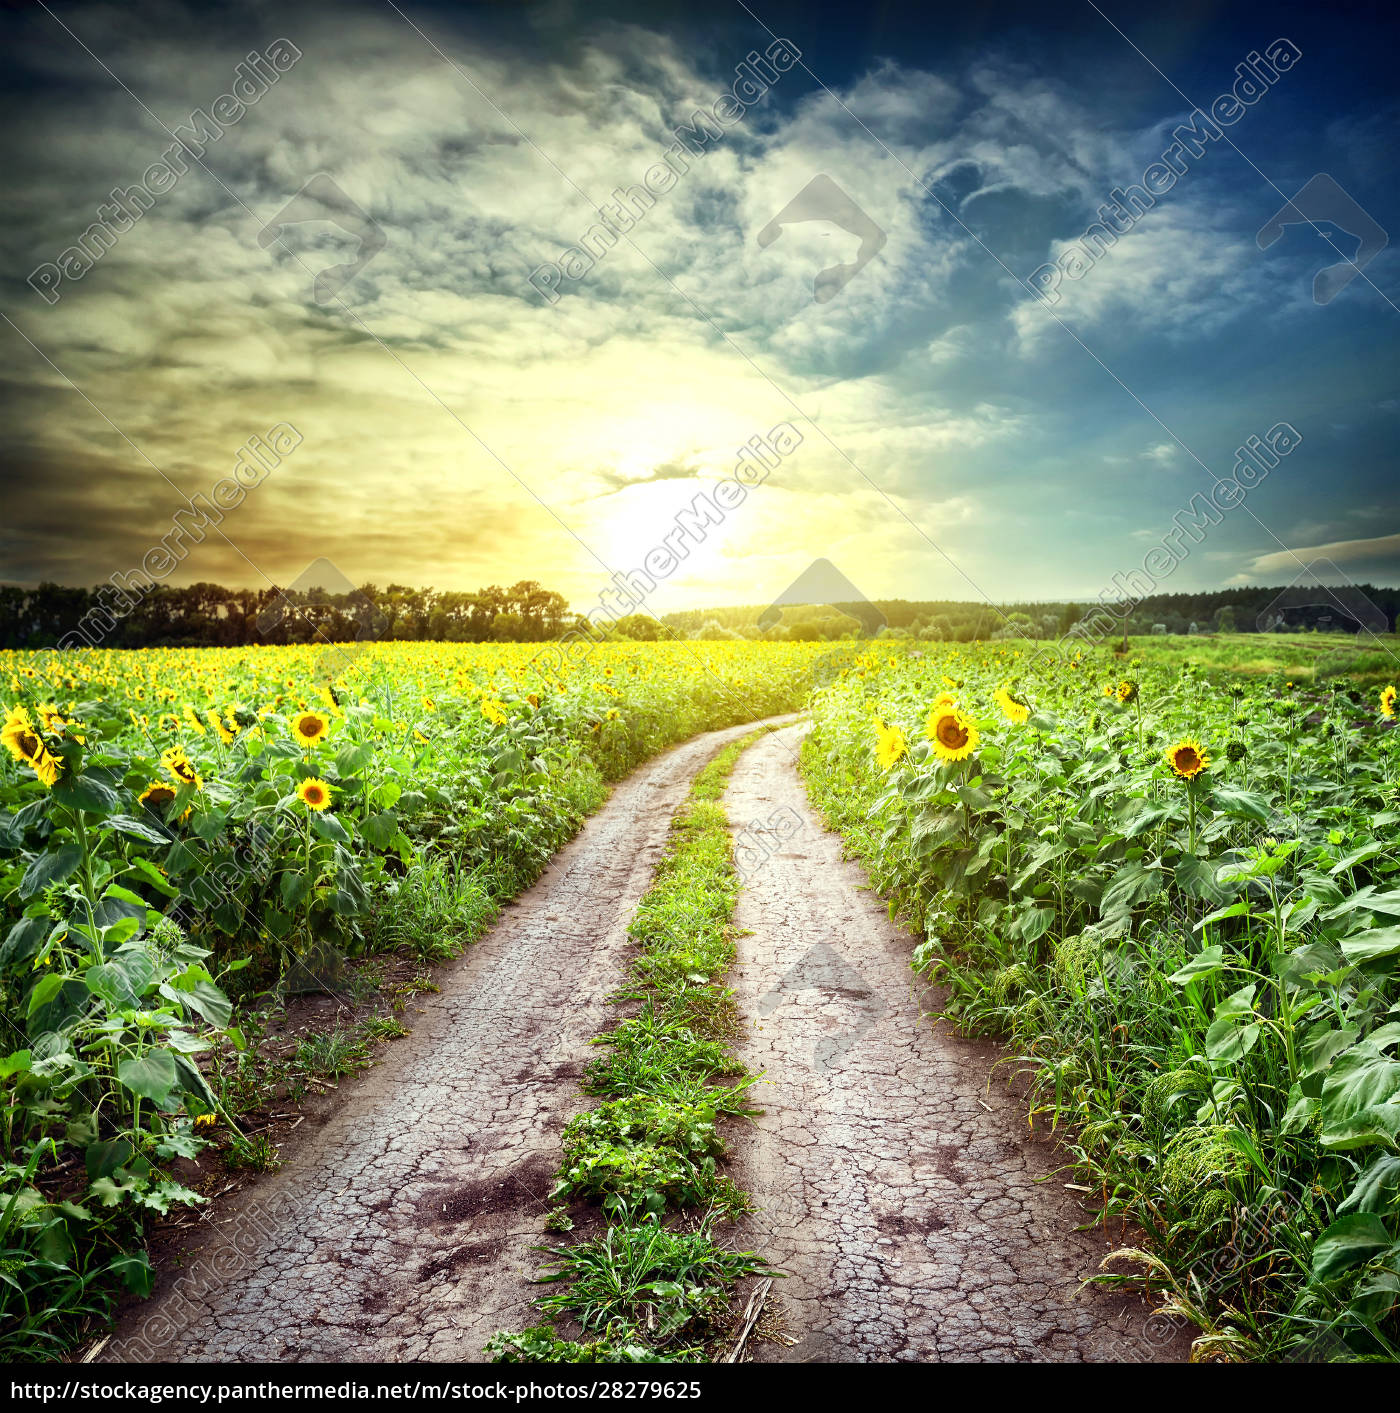 country, road, among, sunflowers - 28279625